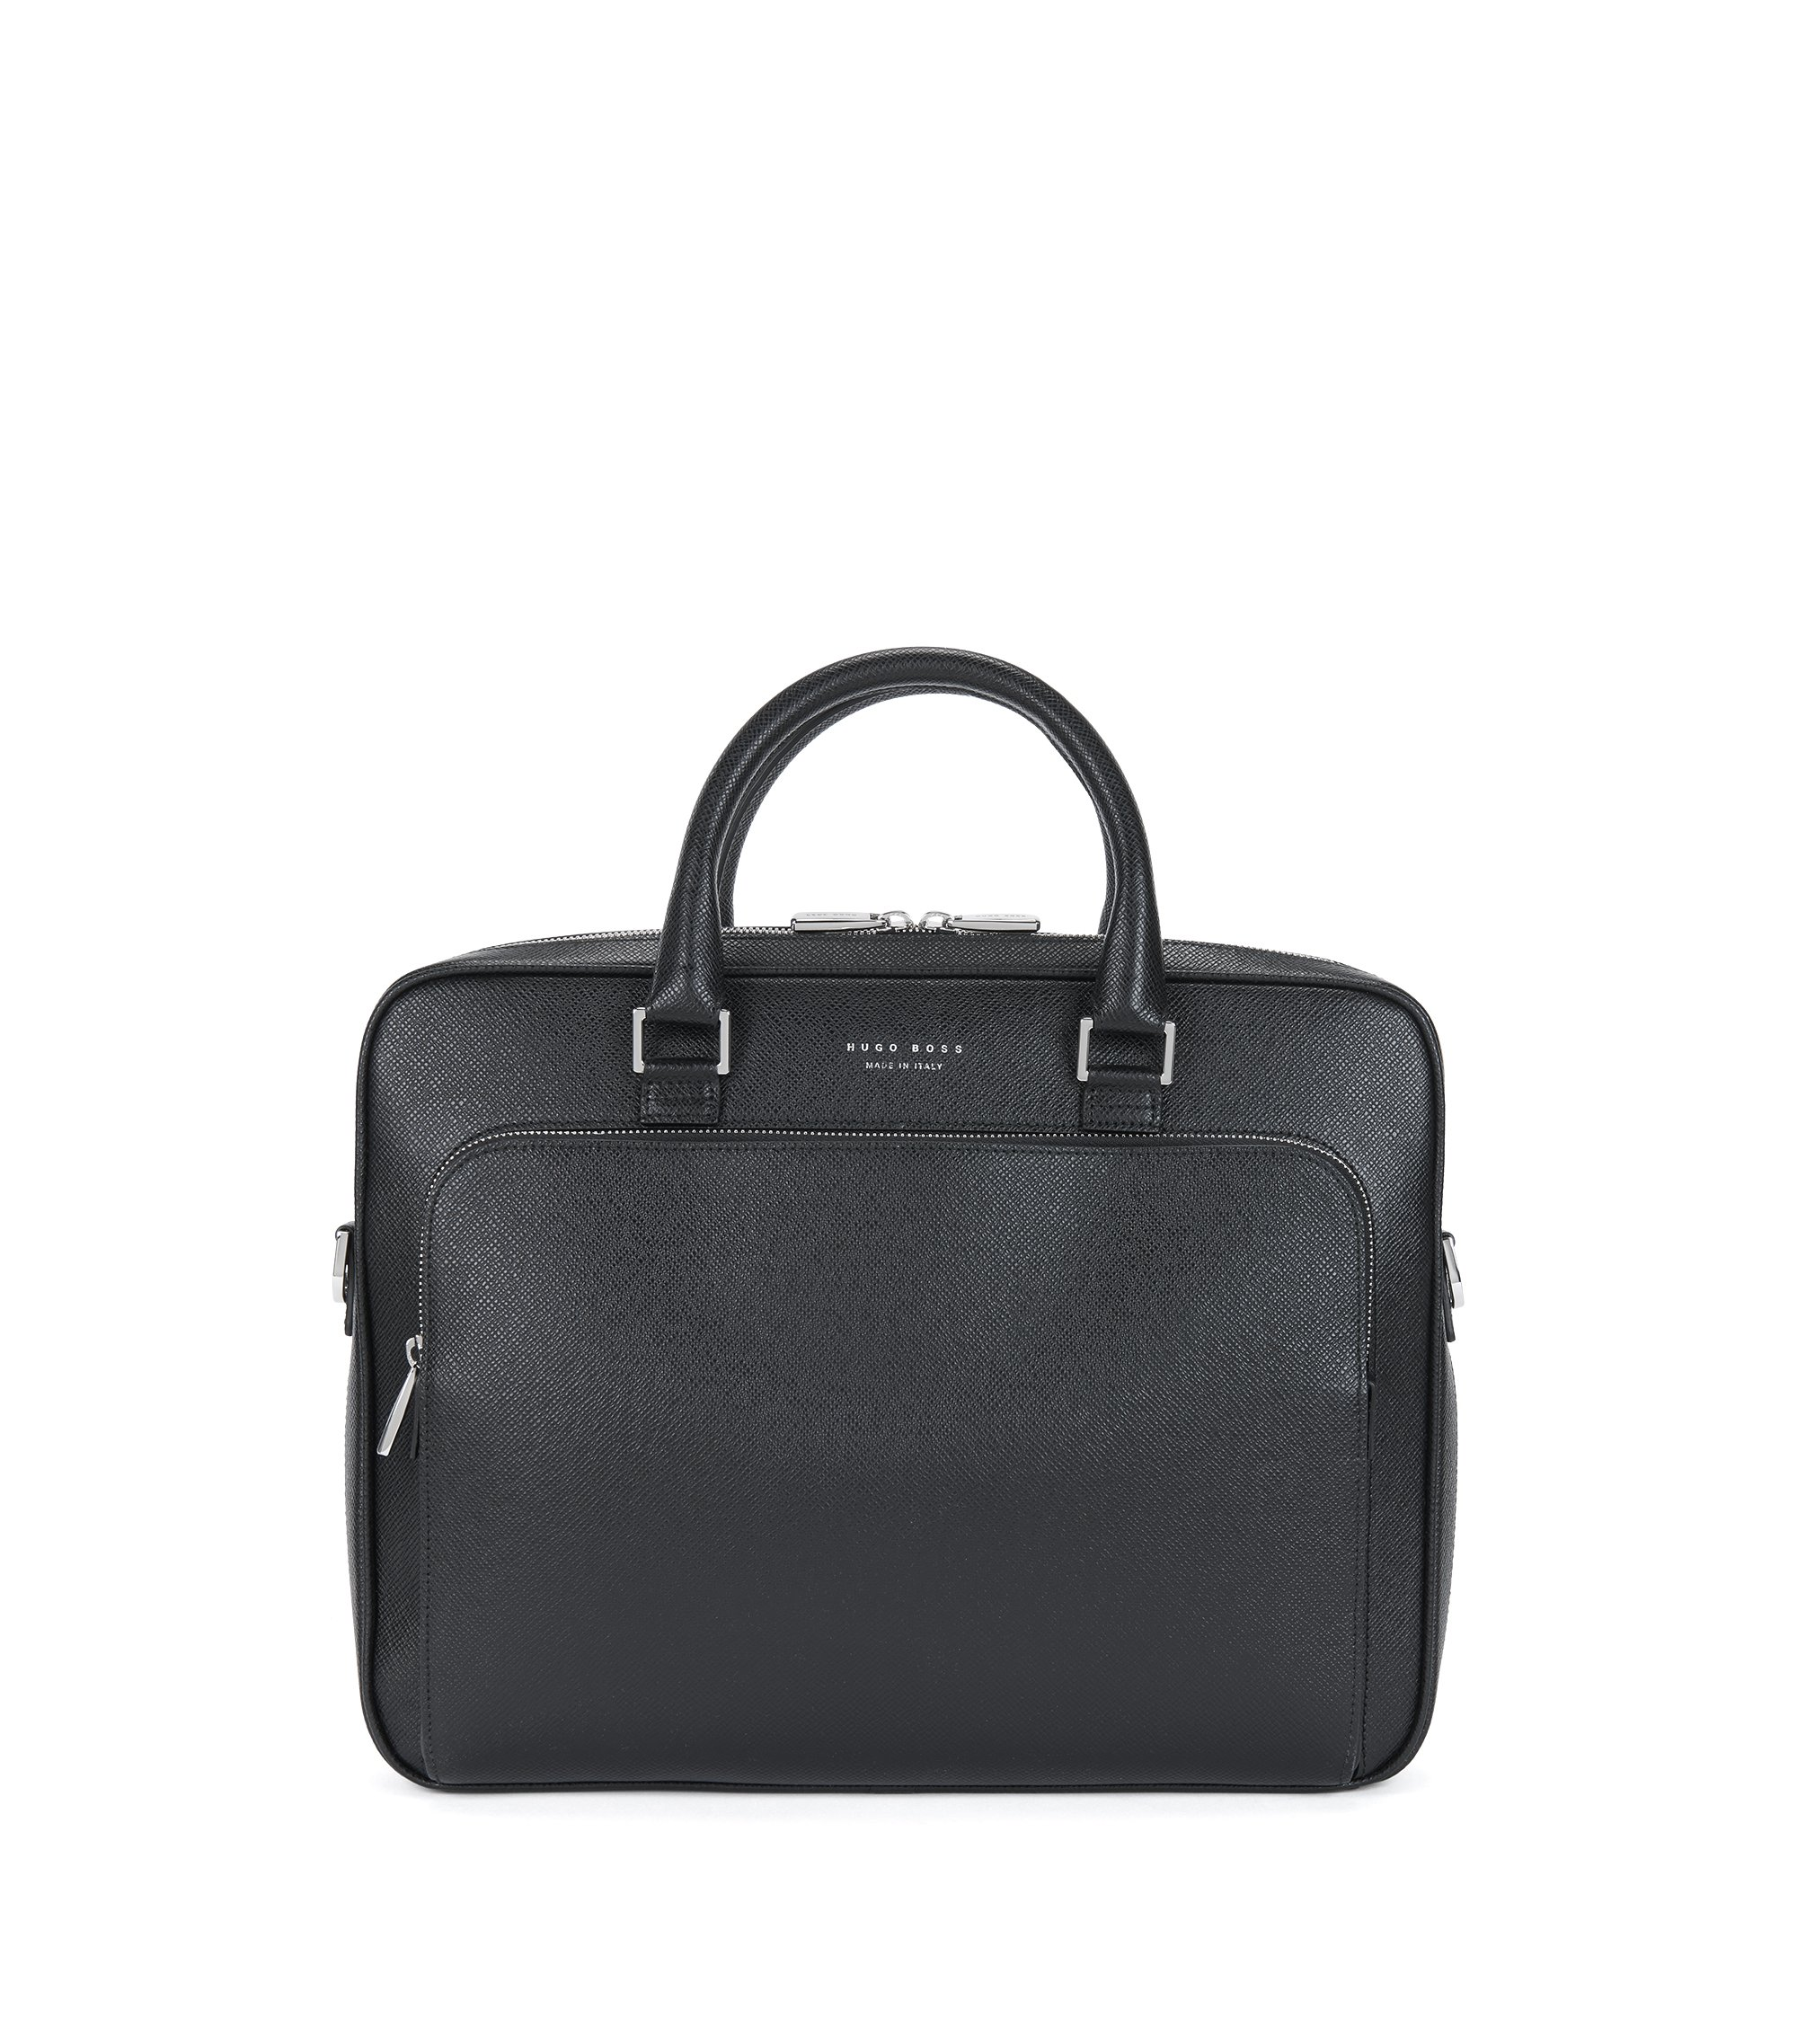 'Signature Slim Doc' | Palmellato Leather Bag, Black